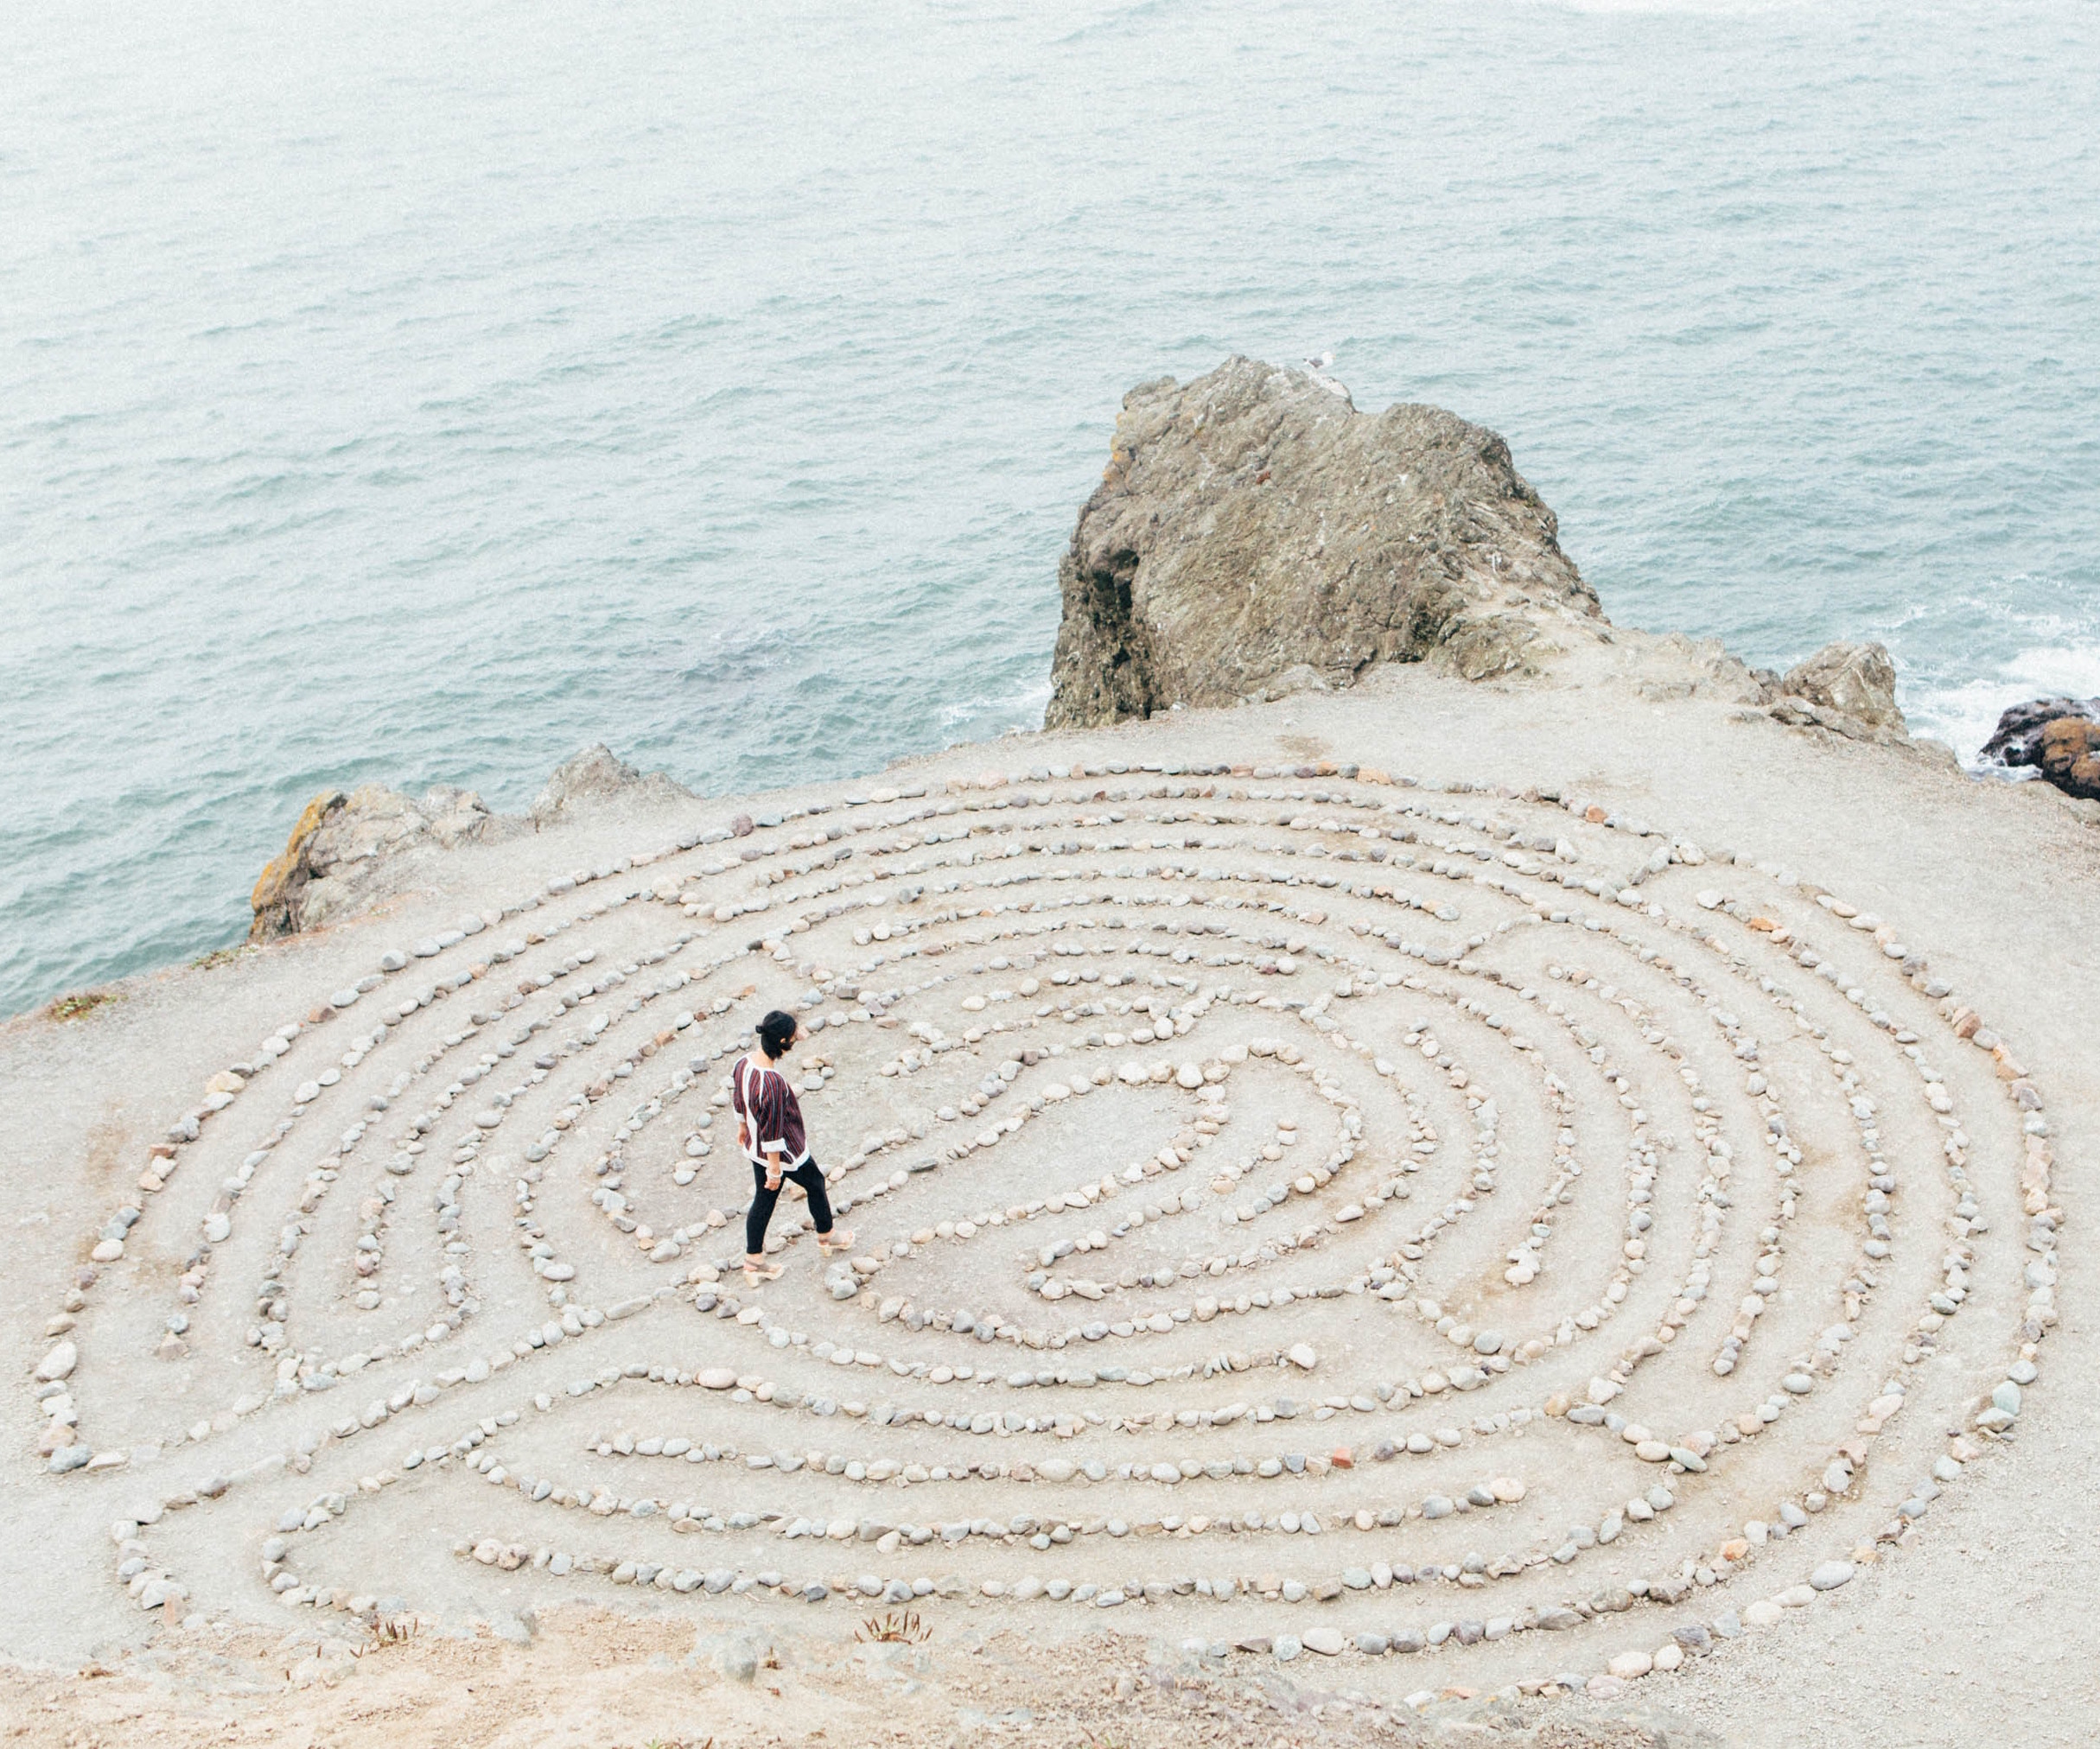 Practising Purpose: Align With Your Why